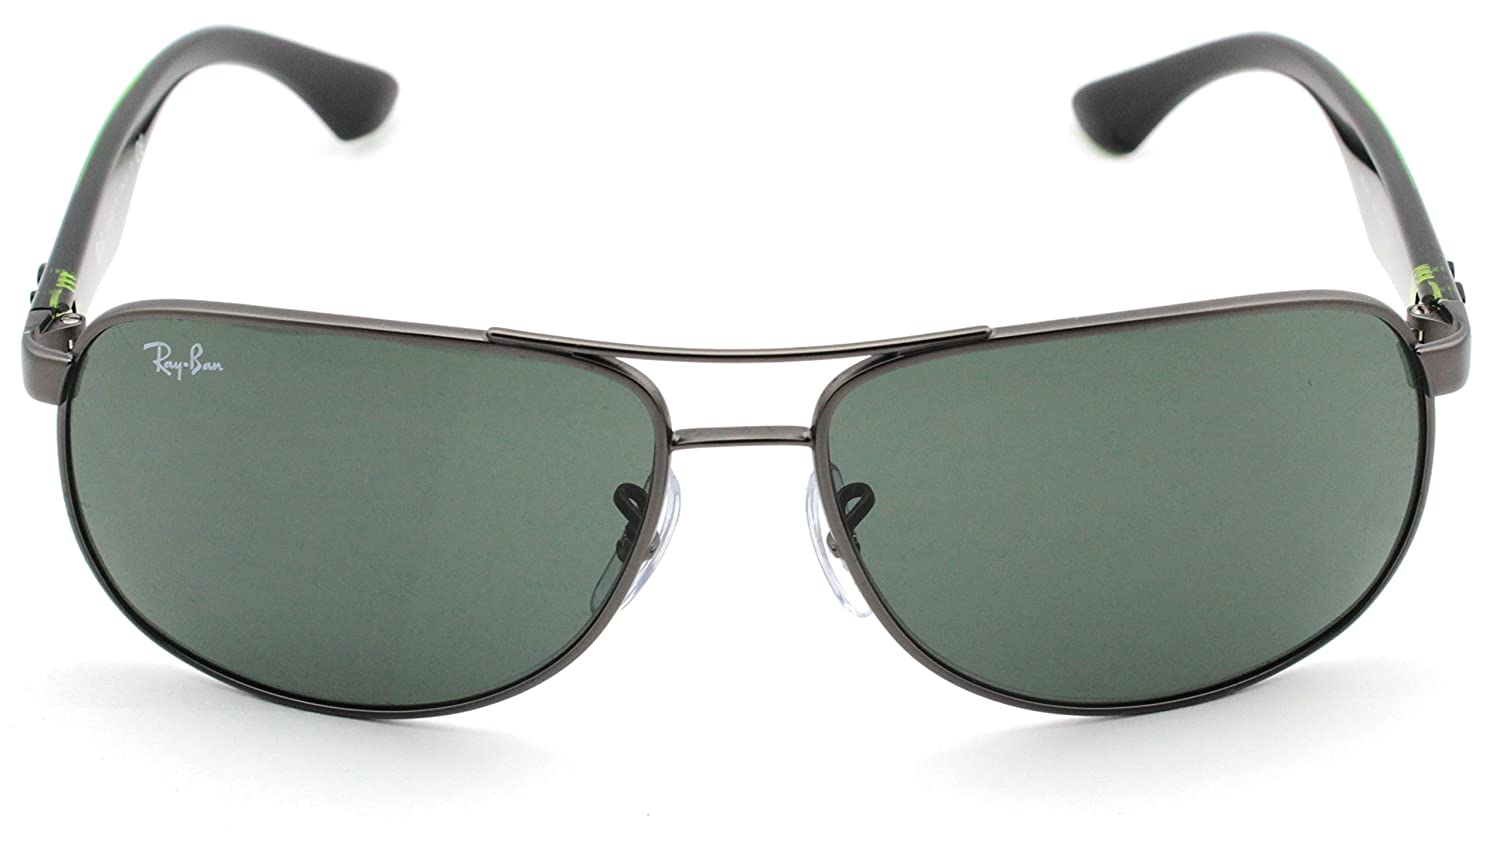 497636f177 Amazon.com  Ray-Ban RB3502 029 Pilot Sunglasses Gunmetal Frame   Green  Classic Lens 61mm  Clothing